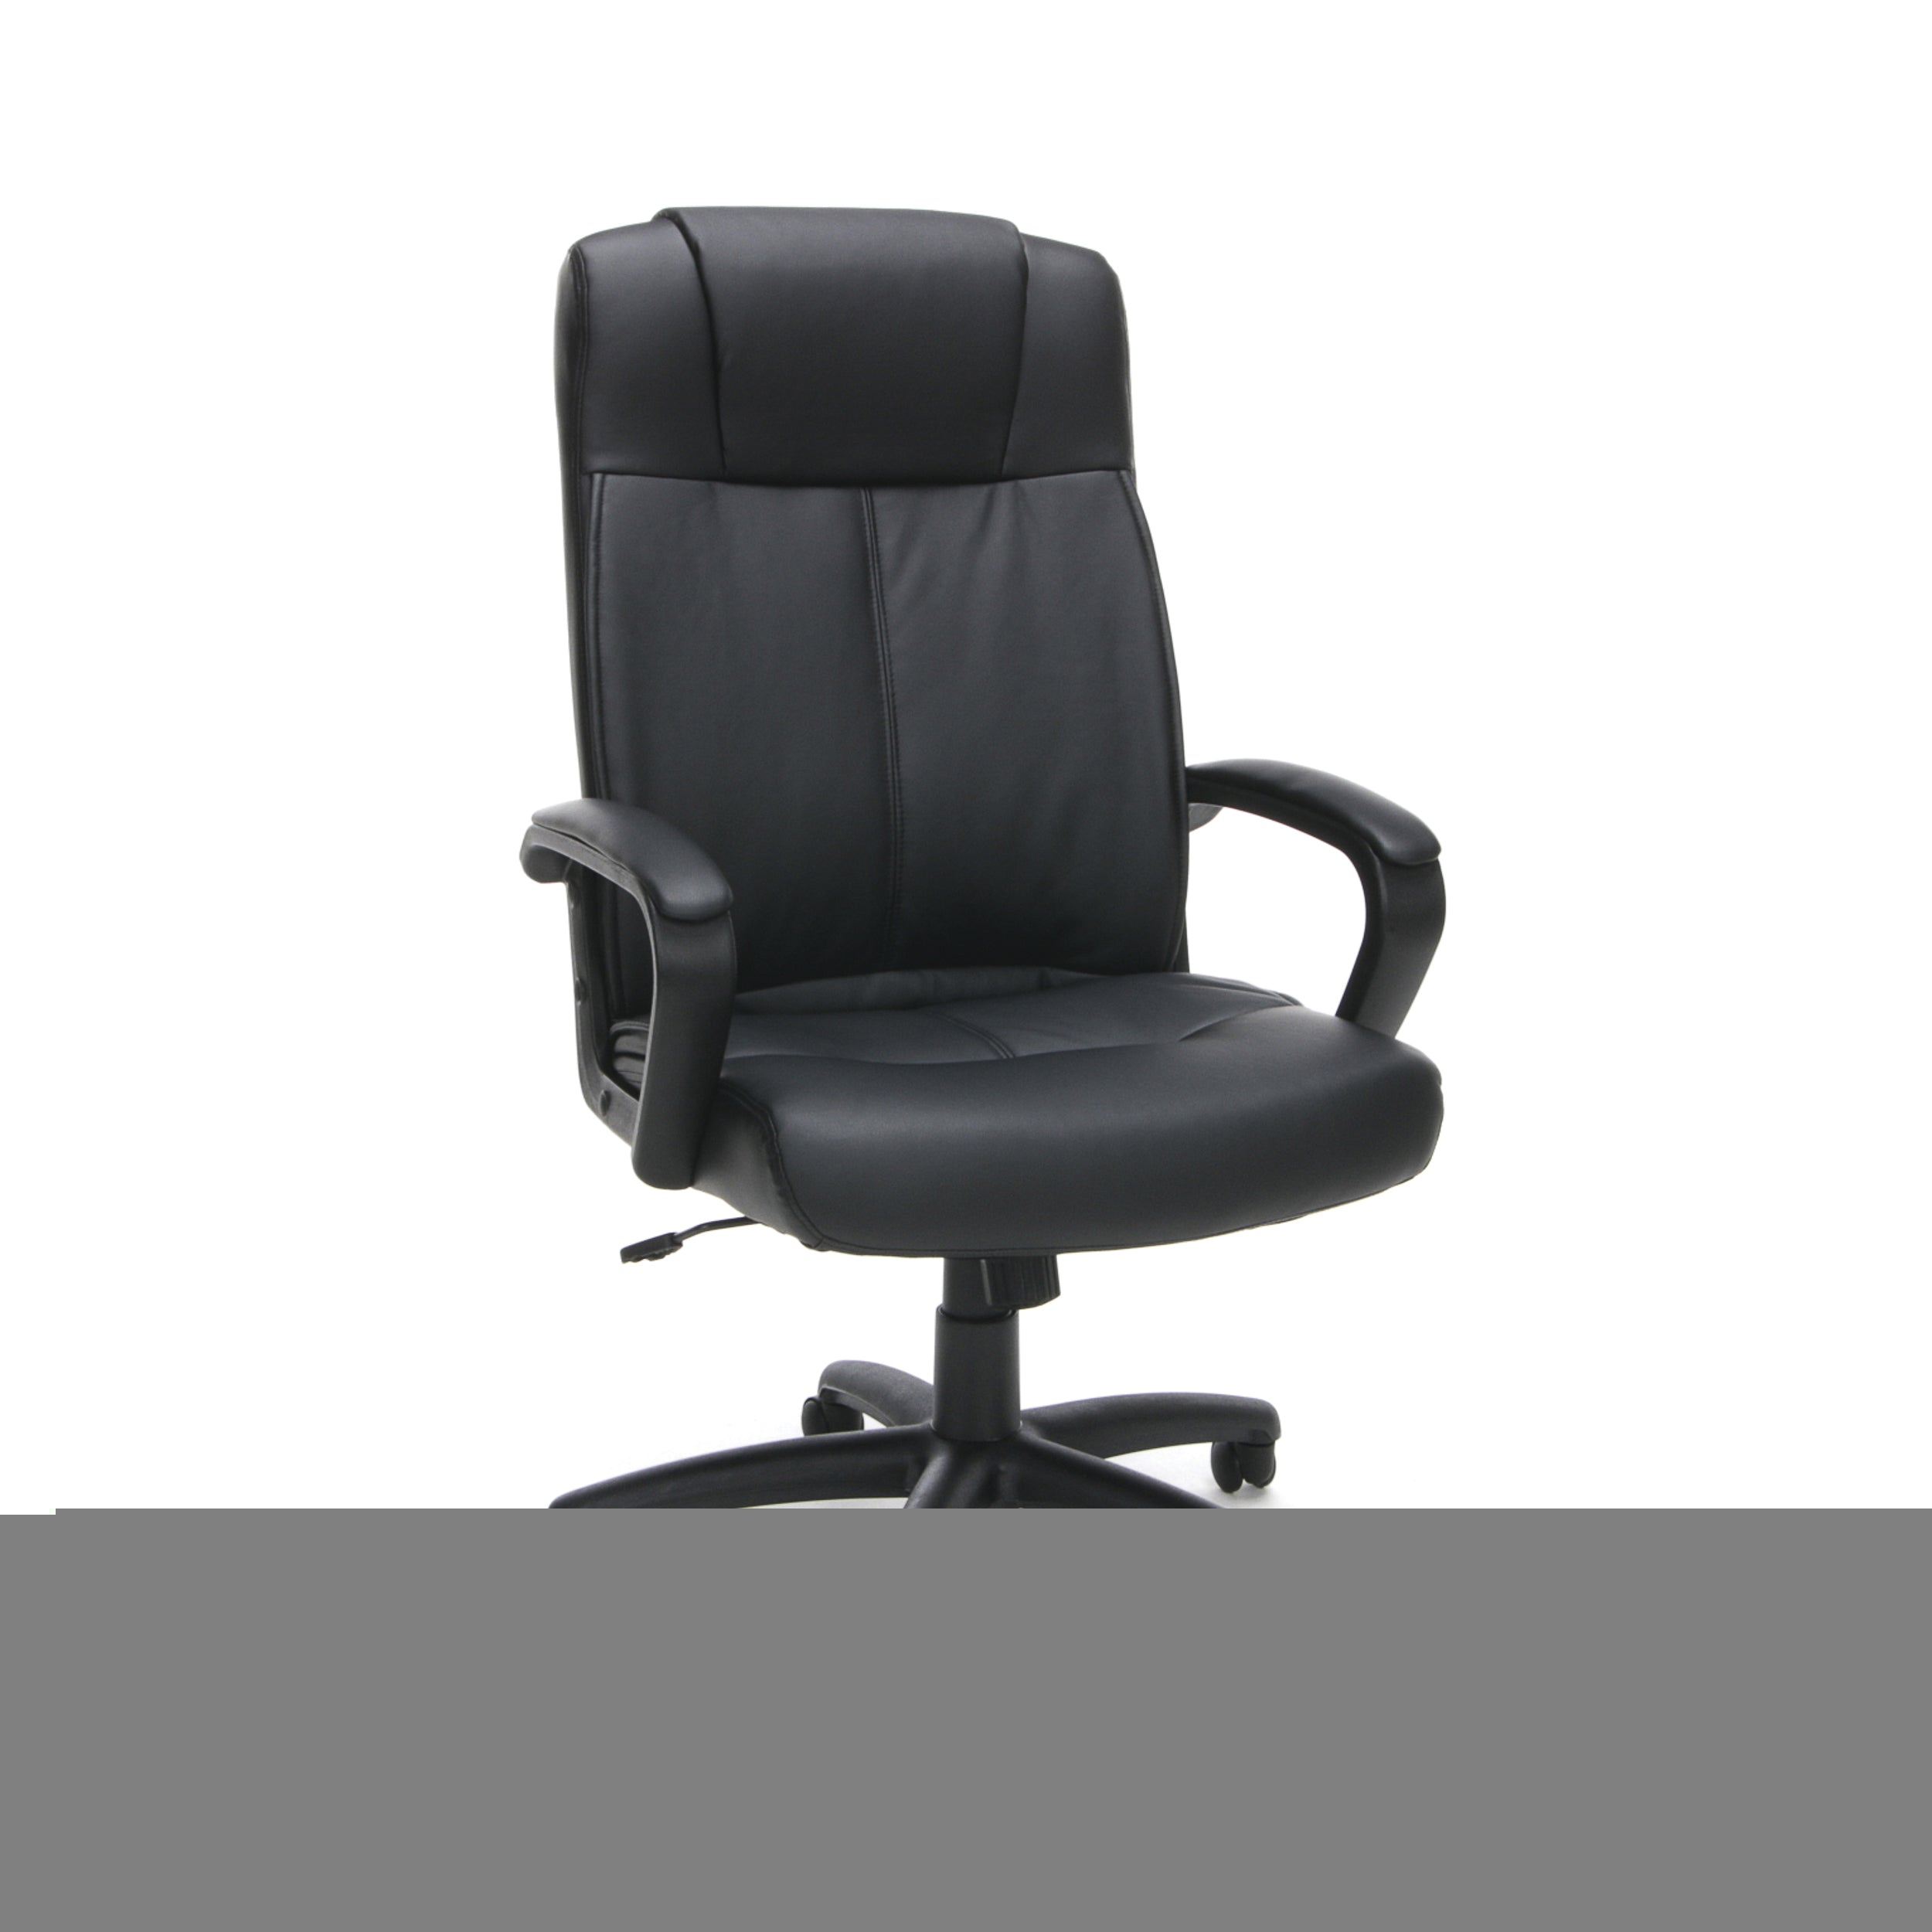 Model ESS-103 Essentials by OFM Leather Task Office Chair